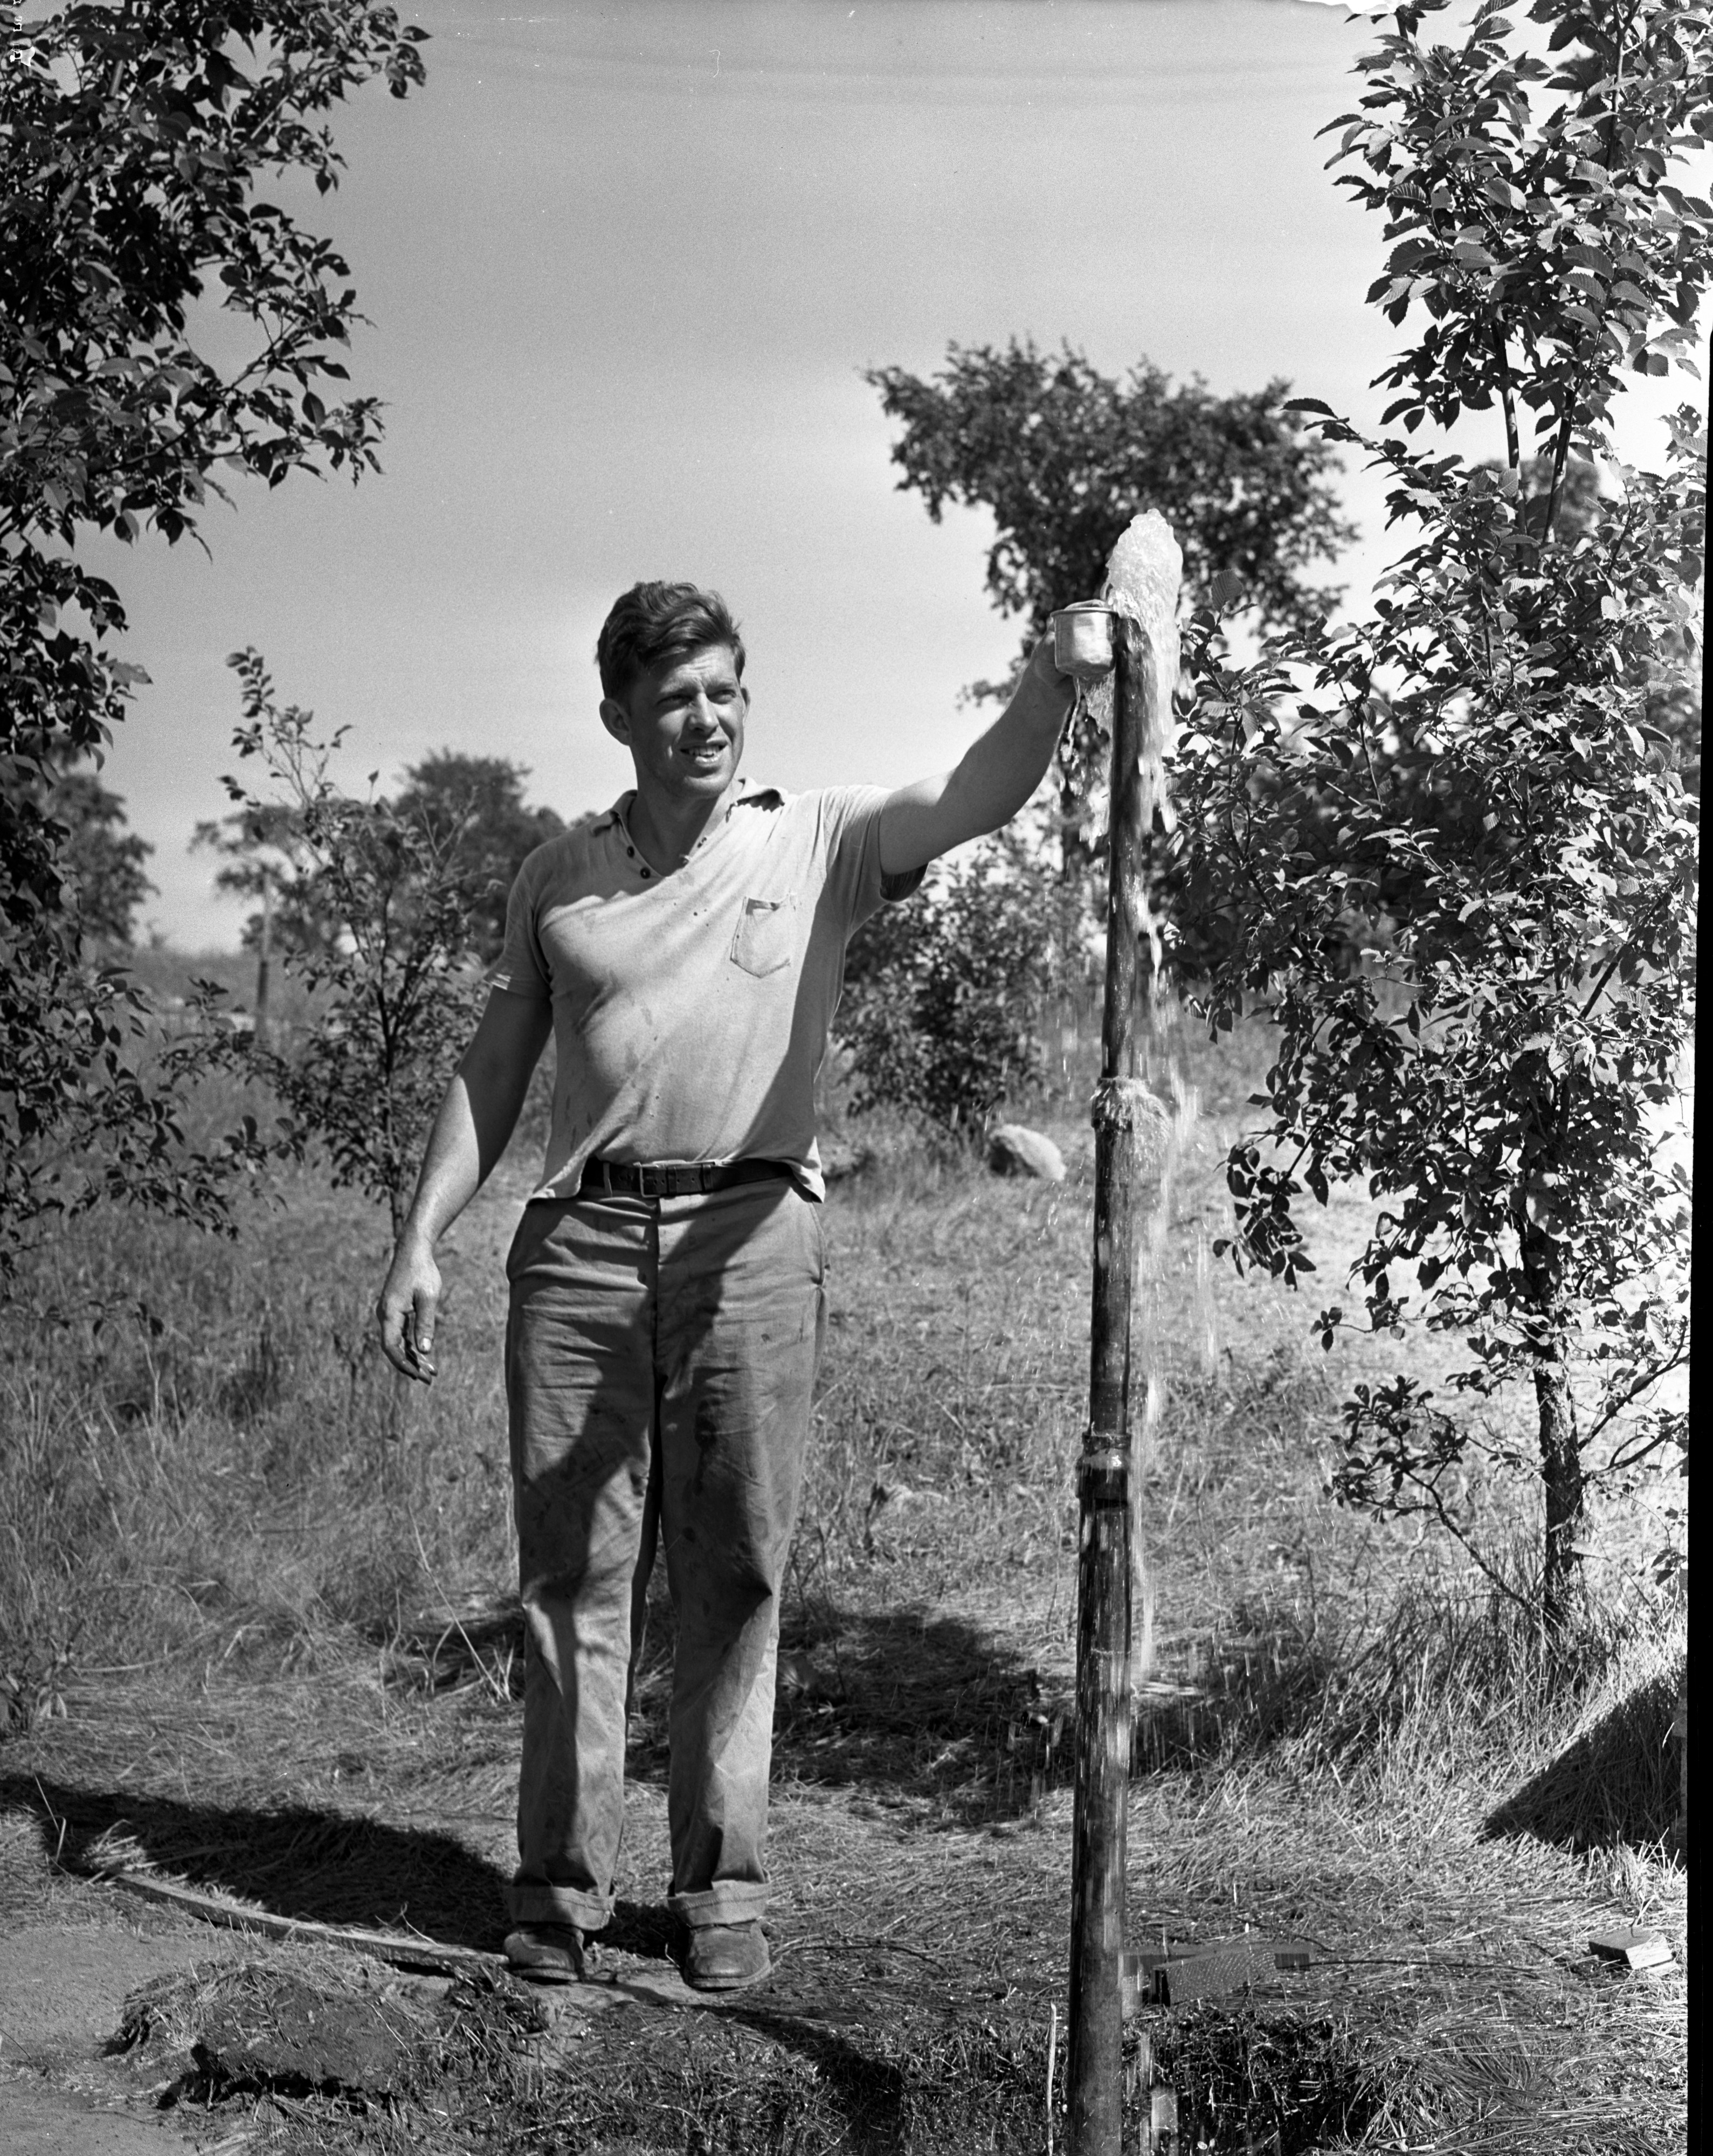 Joe Naggle stands next to an artesian well on Jackson Road, August 1939 image